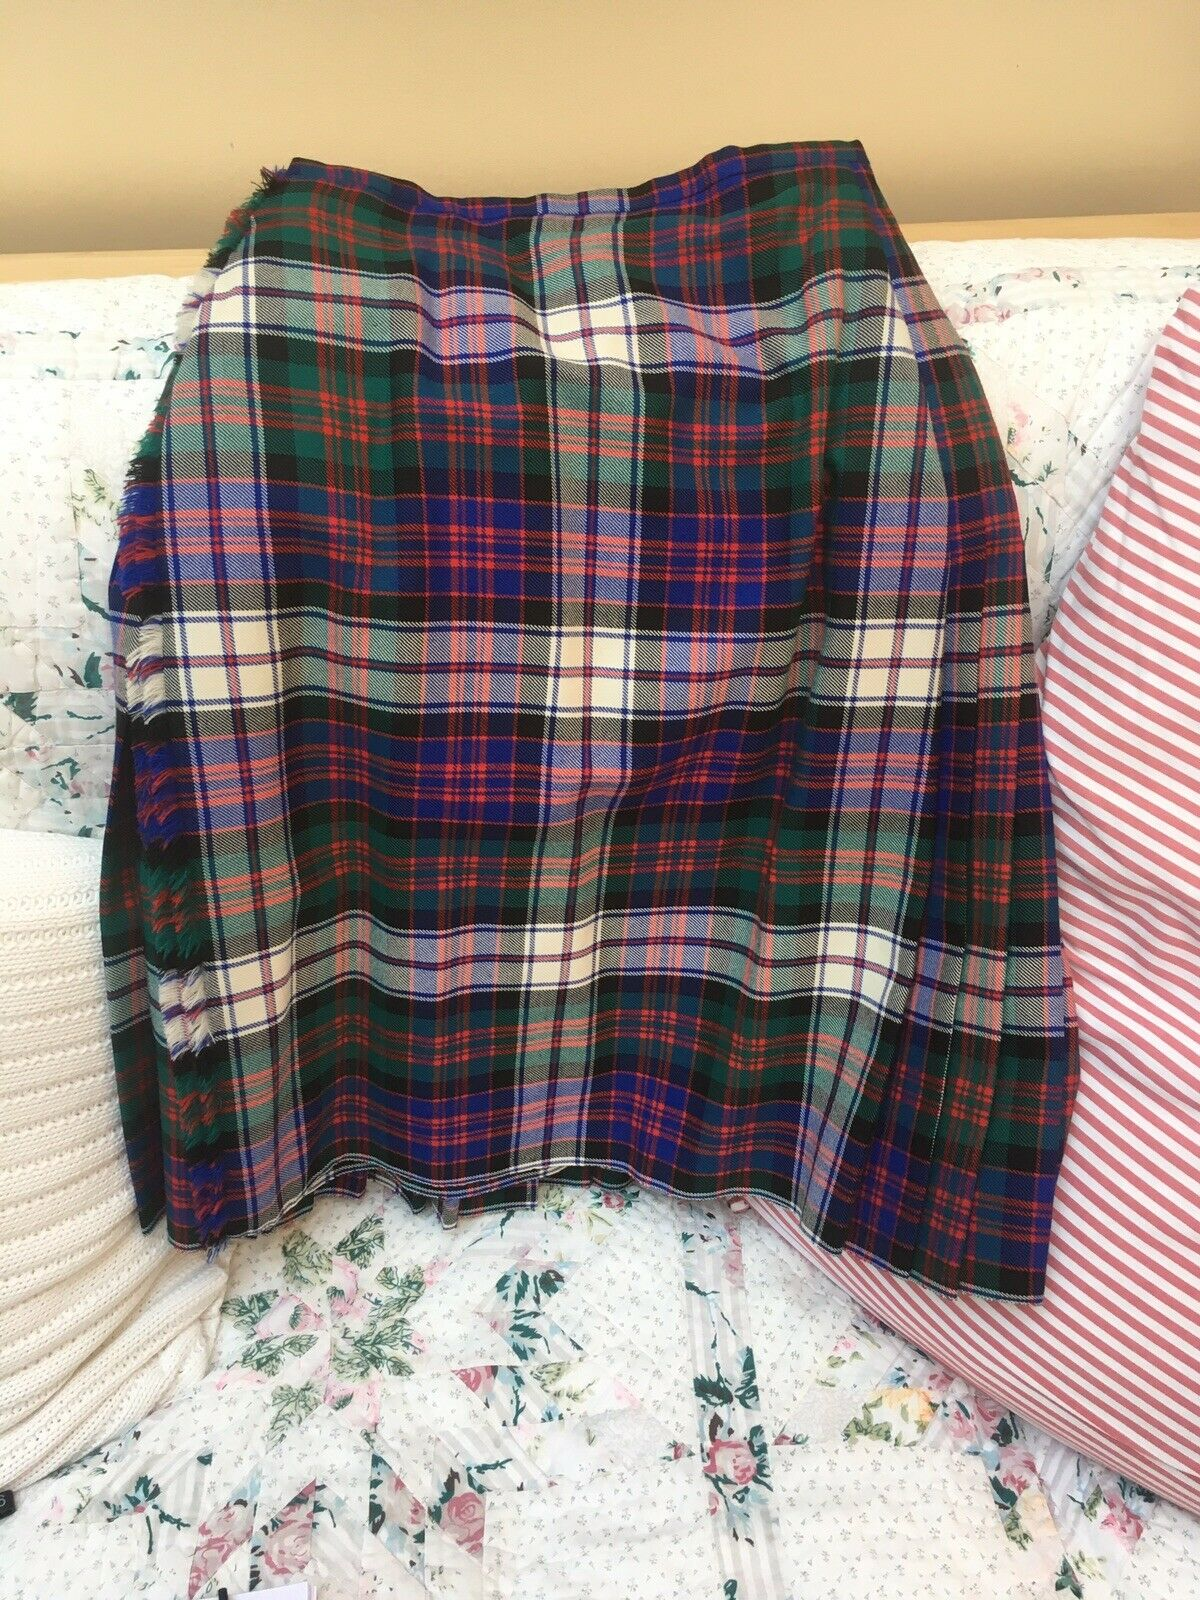 Highland Dancing Outfit - Navy/Green/Cream/Red